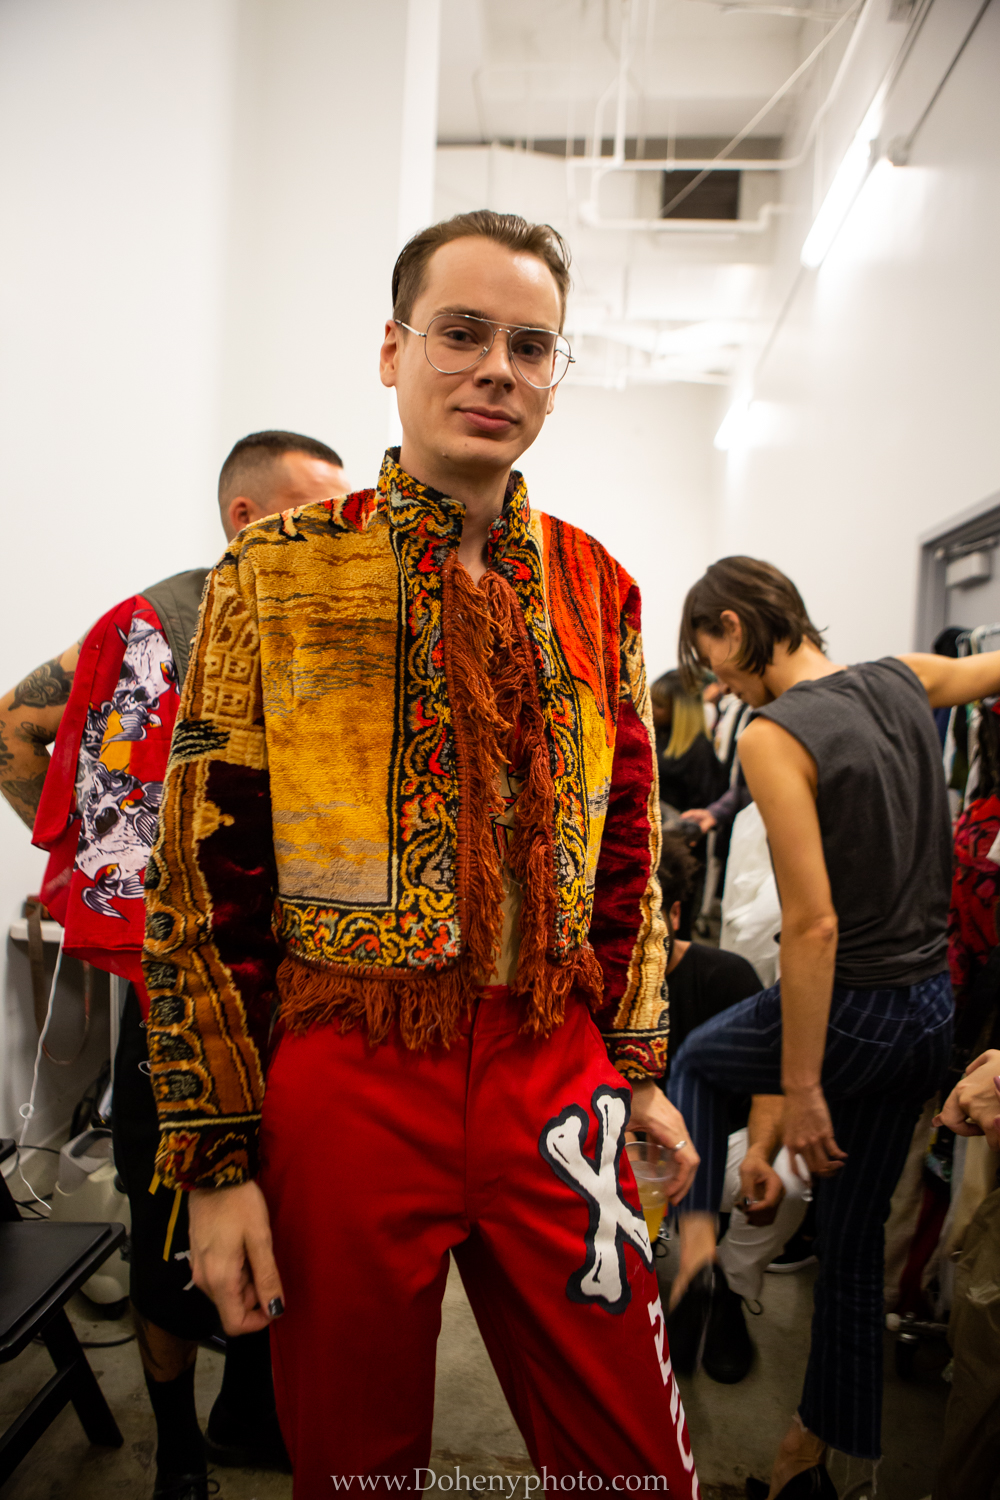 bohemian_society_LA_Fashion_week_Dohenyphoto-3865.jpg